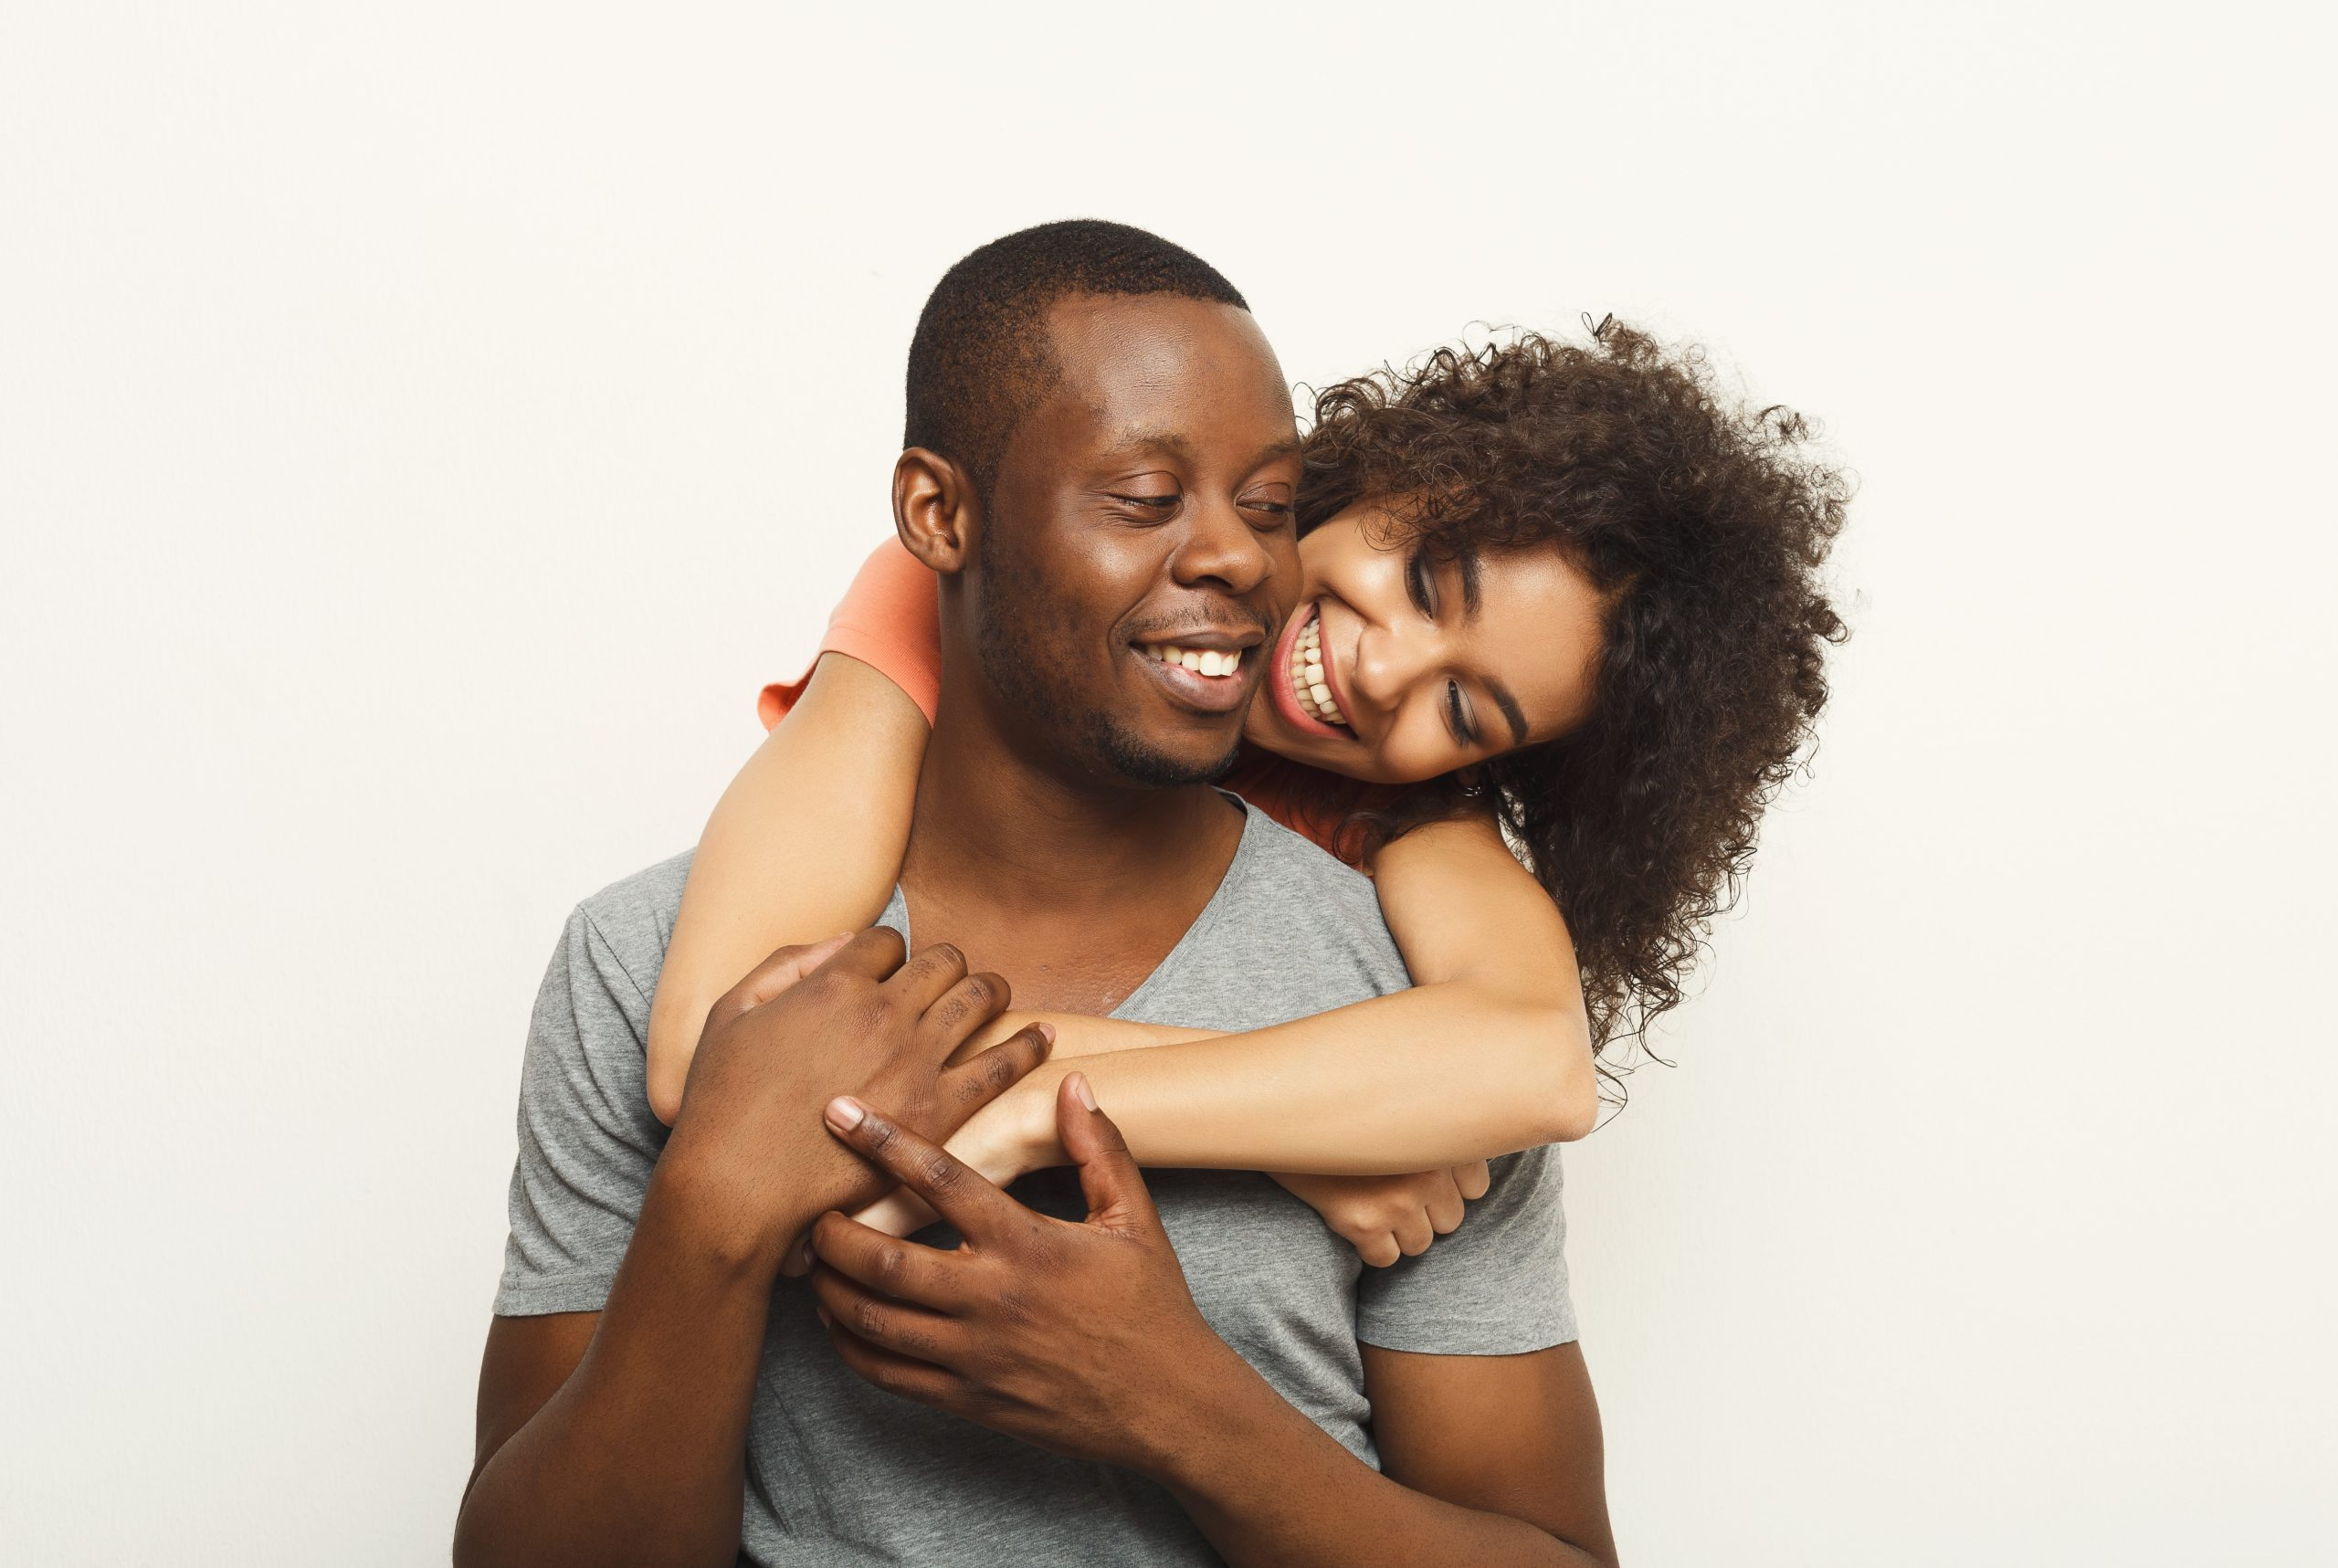 Black couple hugging and posing at white background